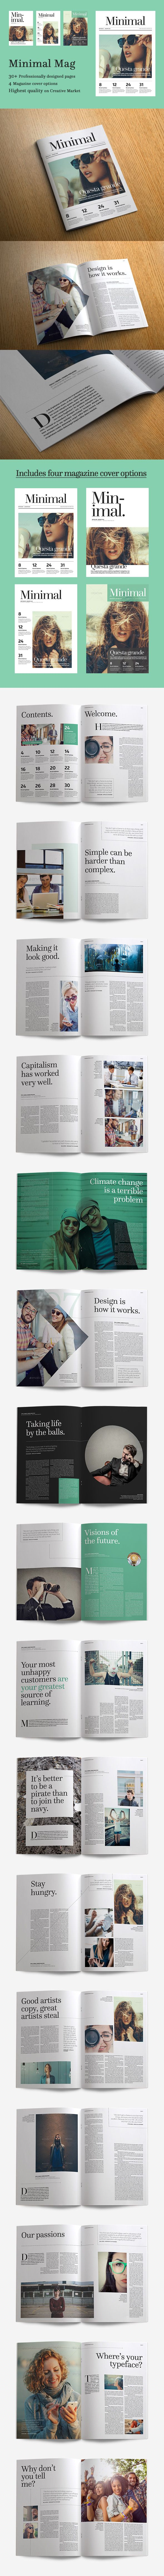 Minimal Magazine by CRS Design on @creativemarket